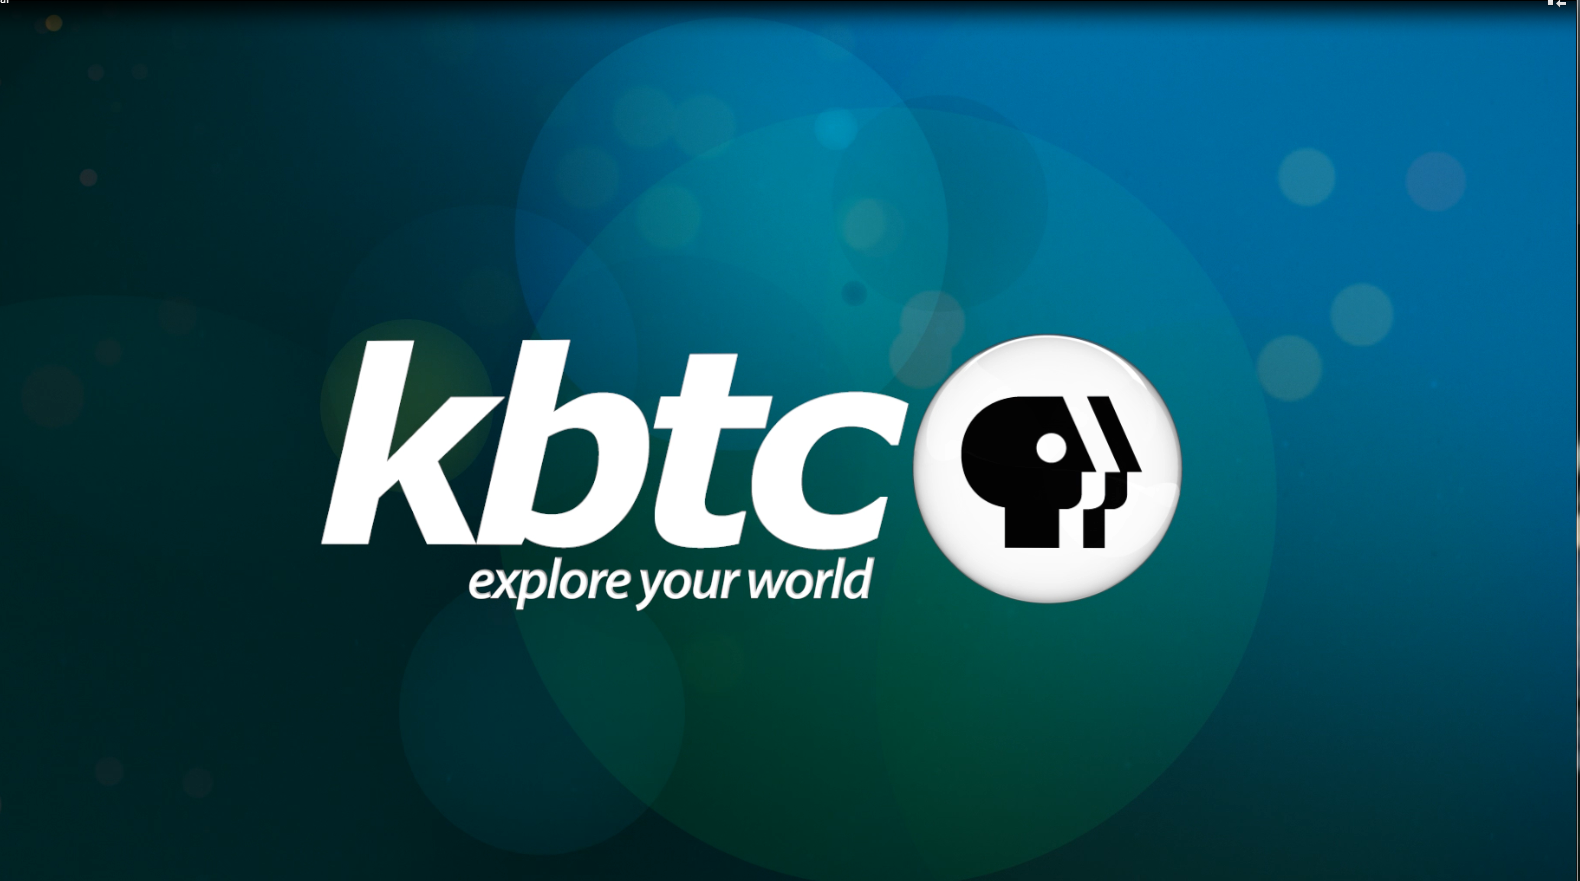 The KBTC Story